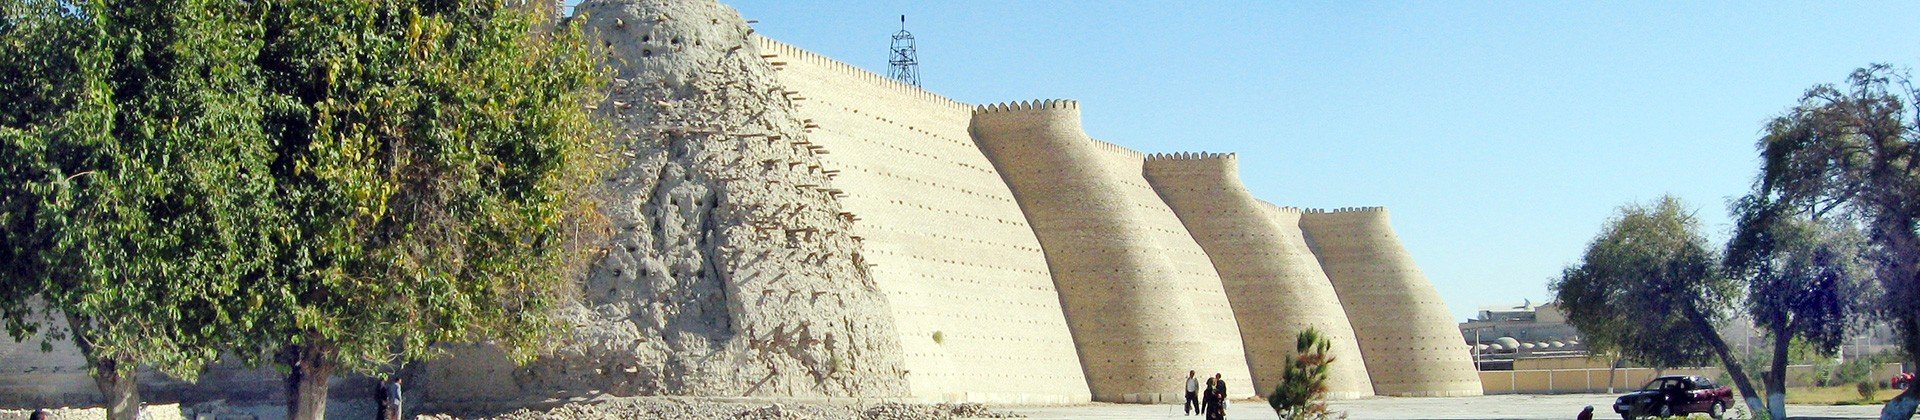 Ark Fortress in Bukhara - 1